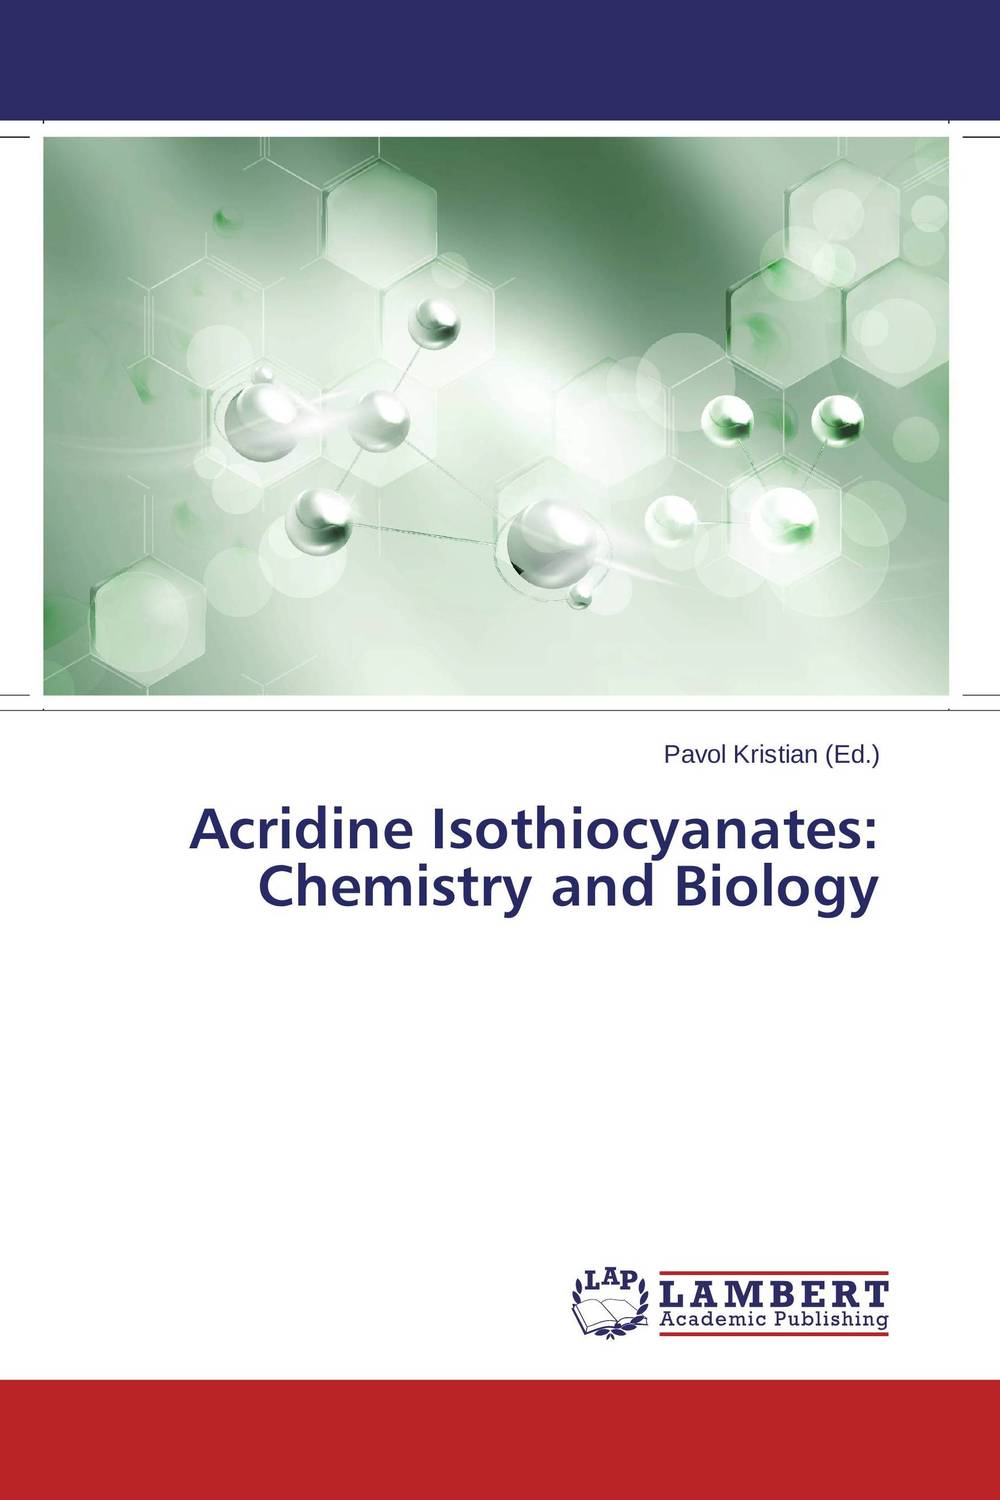 Acridine Isothiocyanates: Chemistry and Biology chemistry and biology of heparin and heparan sulfate